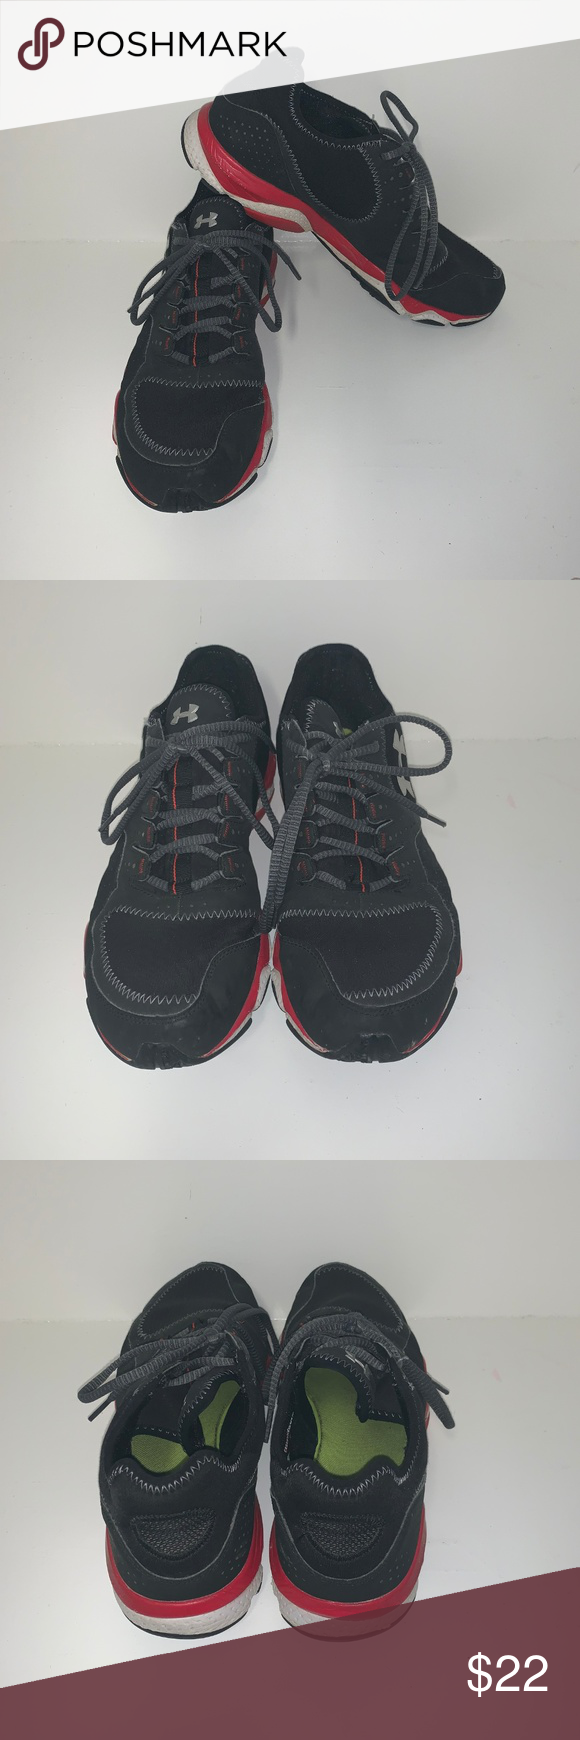 420f5c77cc6 Under Armour Trainers These do show some signs of wear on the bottoms. No  holes or tears